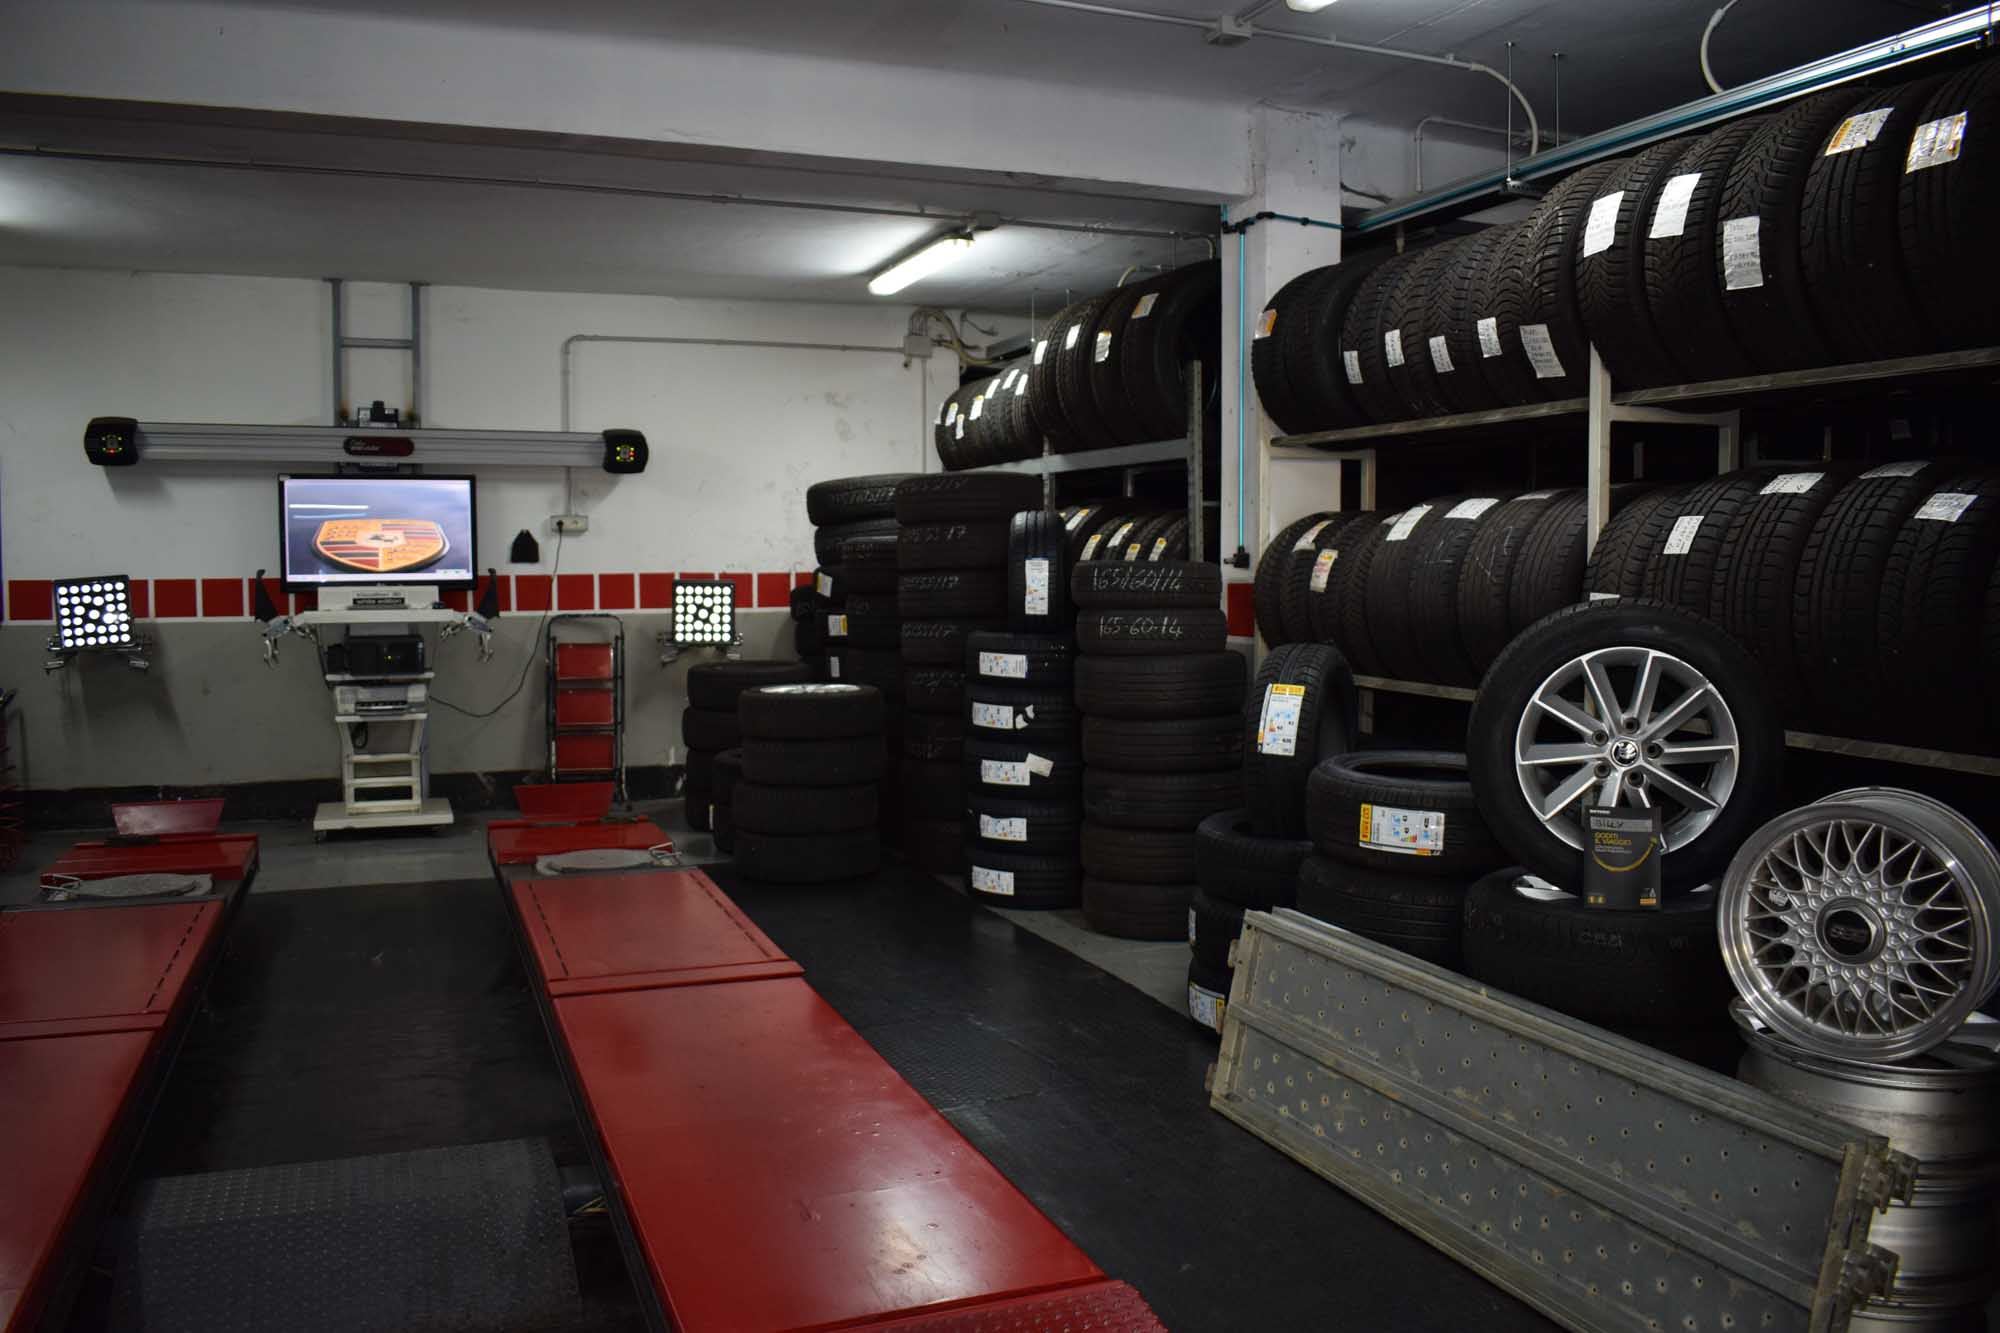 giesse-gomme-officina-pneumatici-11